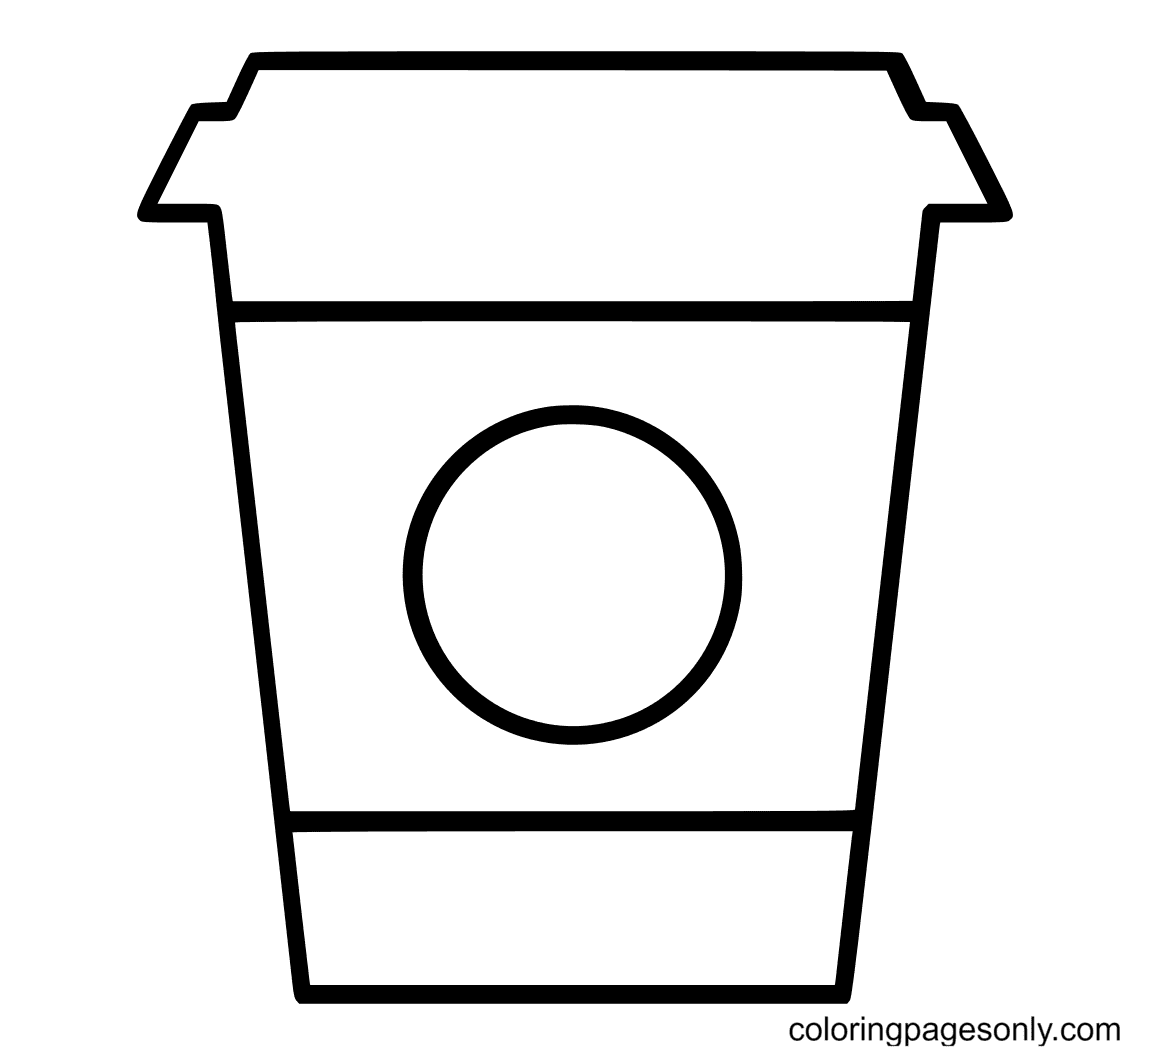 Starbucks Cup ultra circle Coloring Page